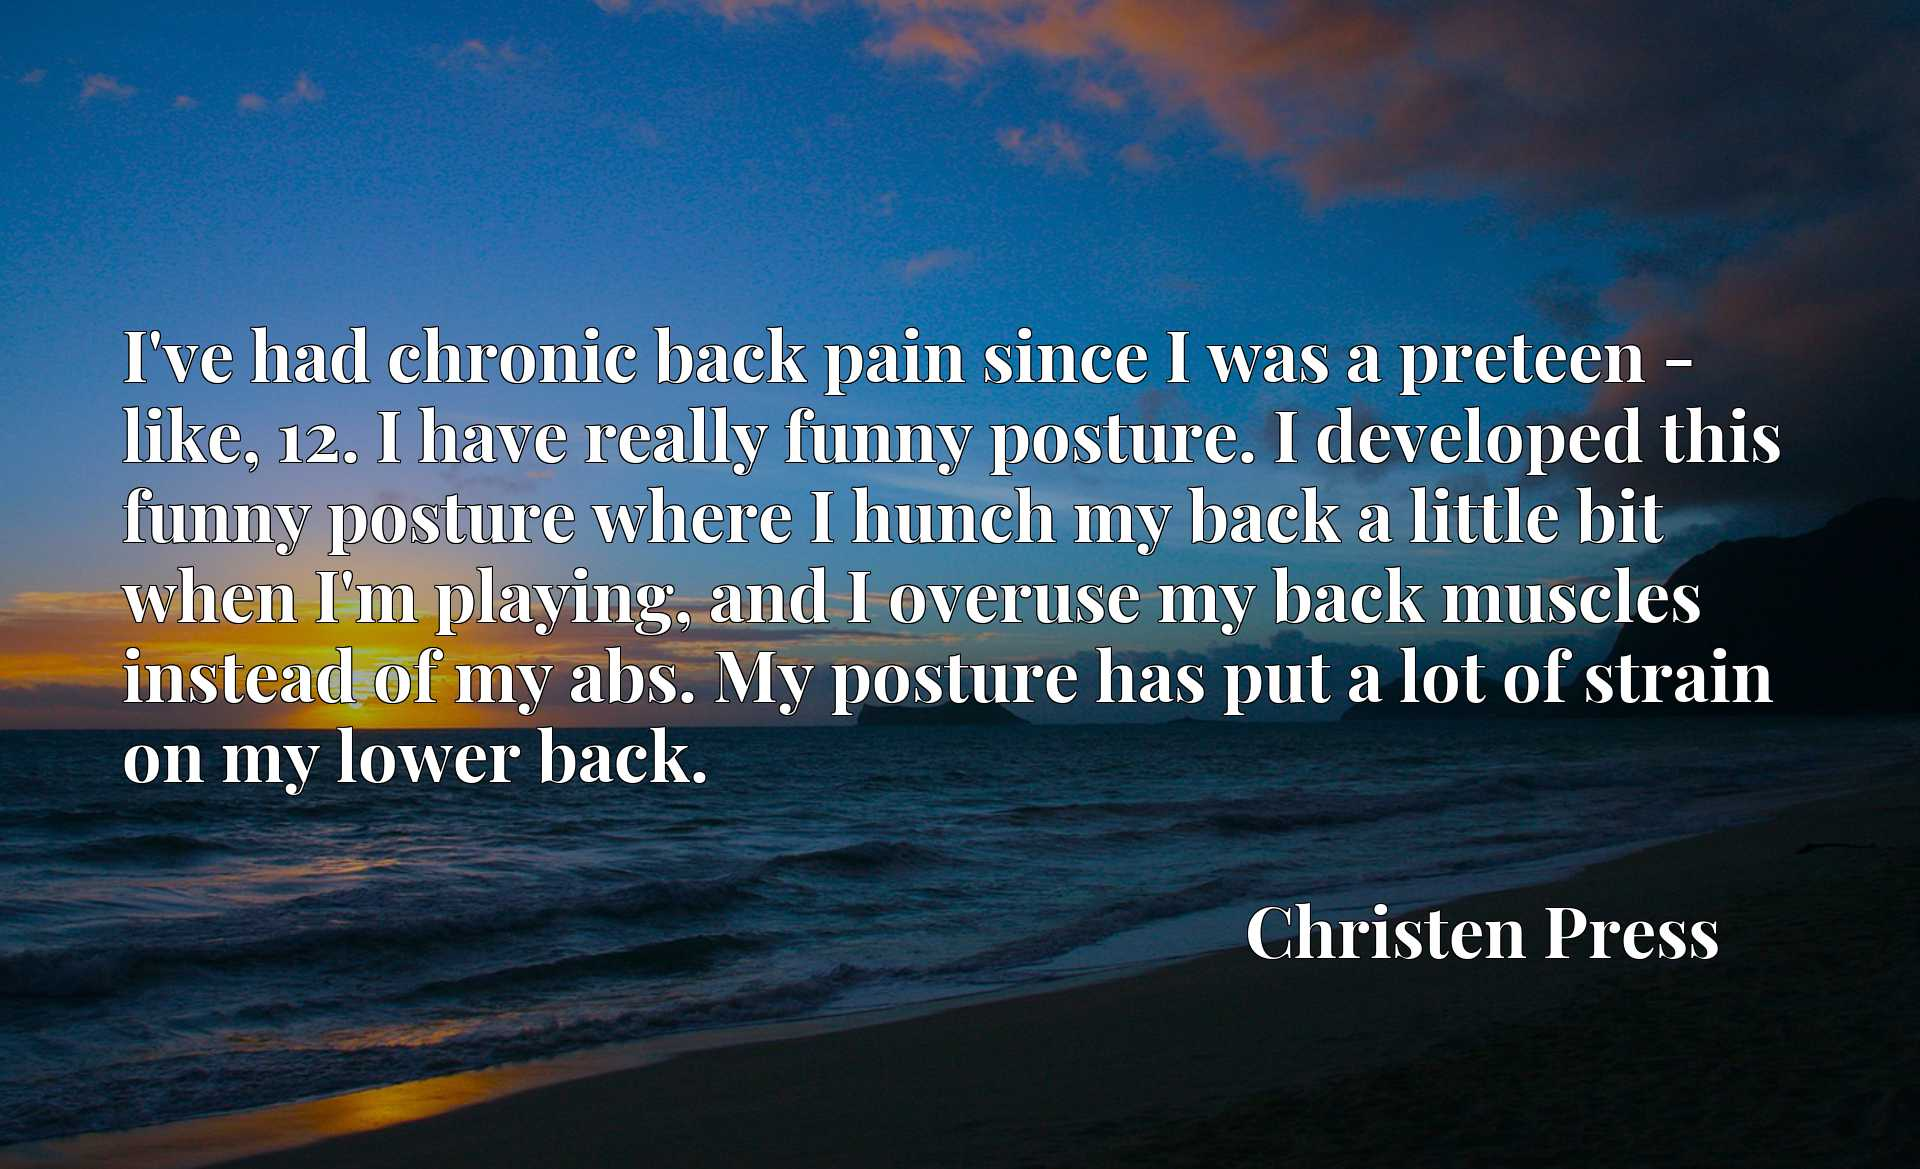 I've had chronic back pain since I was a preteen - like, 12. I have really funny posture. I developed this funny posture where I hunch my back a little bit when I'm playing, and I overuse my back muscles instead of my abs. My posture has put a lot of strain on my lower back.